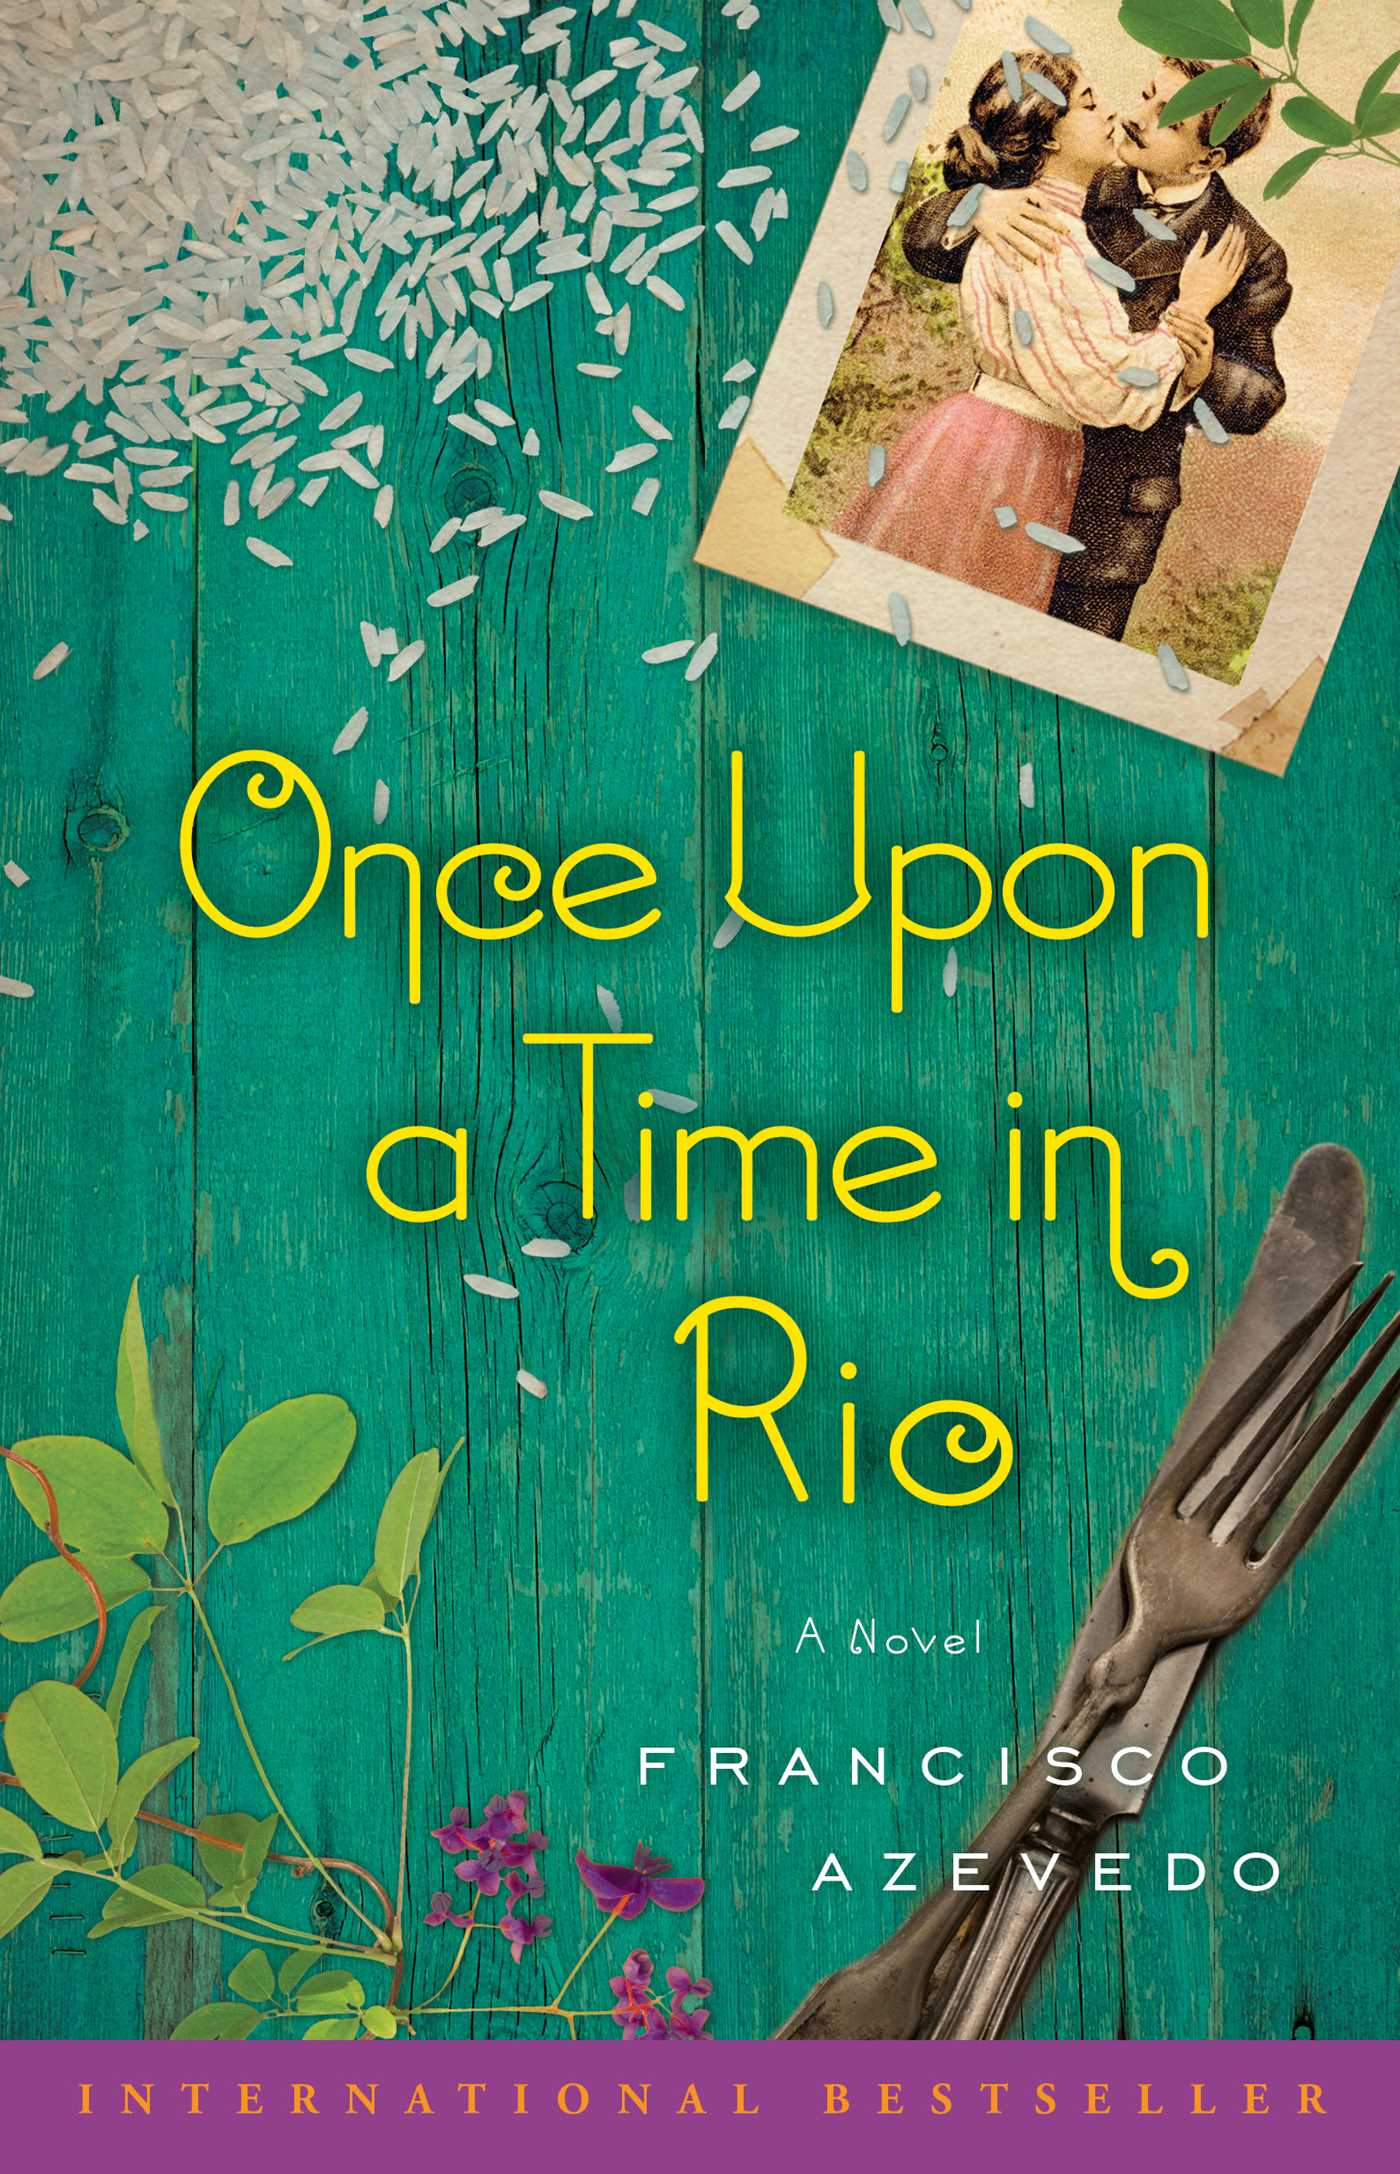 Once-upon-a-time-in-rio-9781451695571_hr